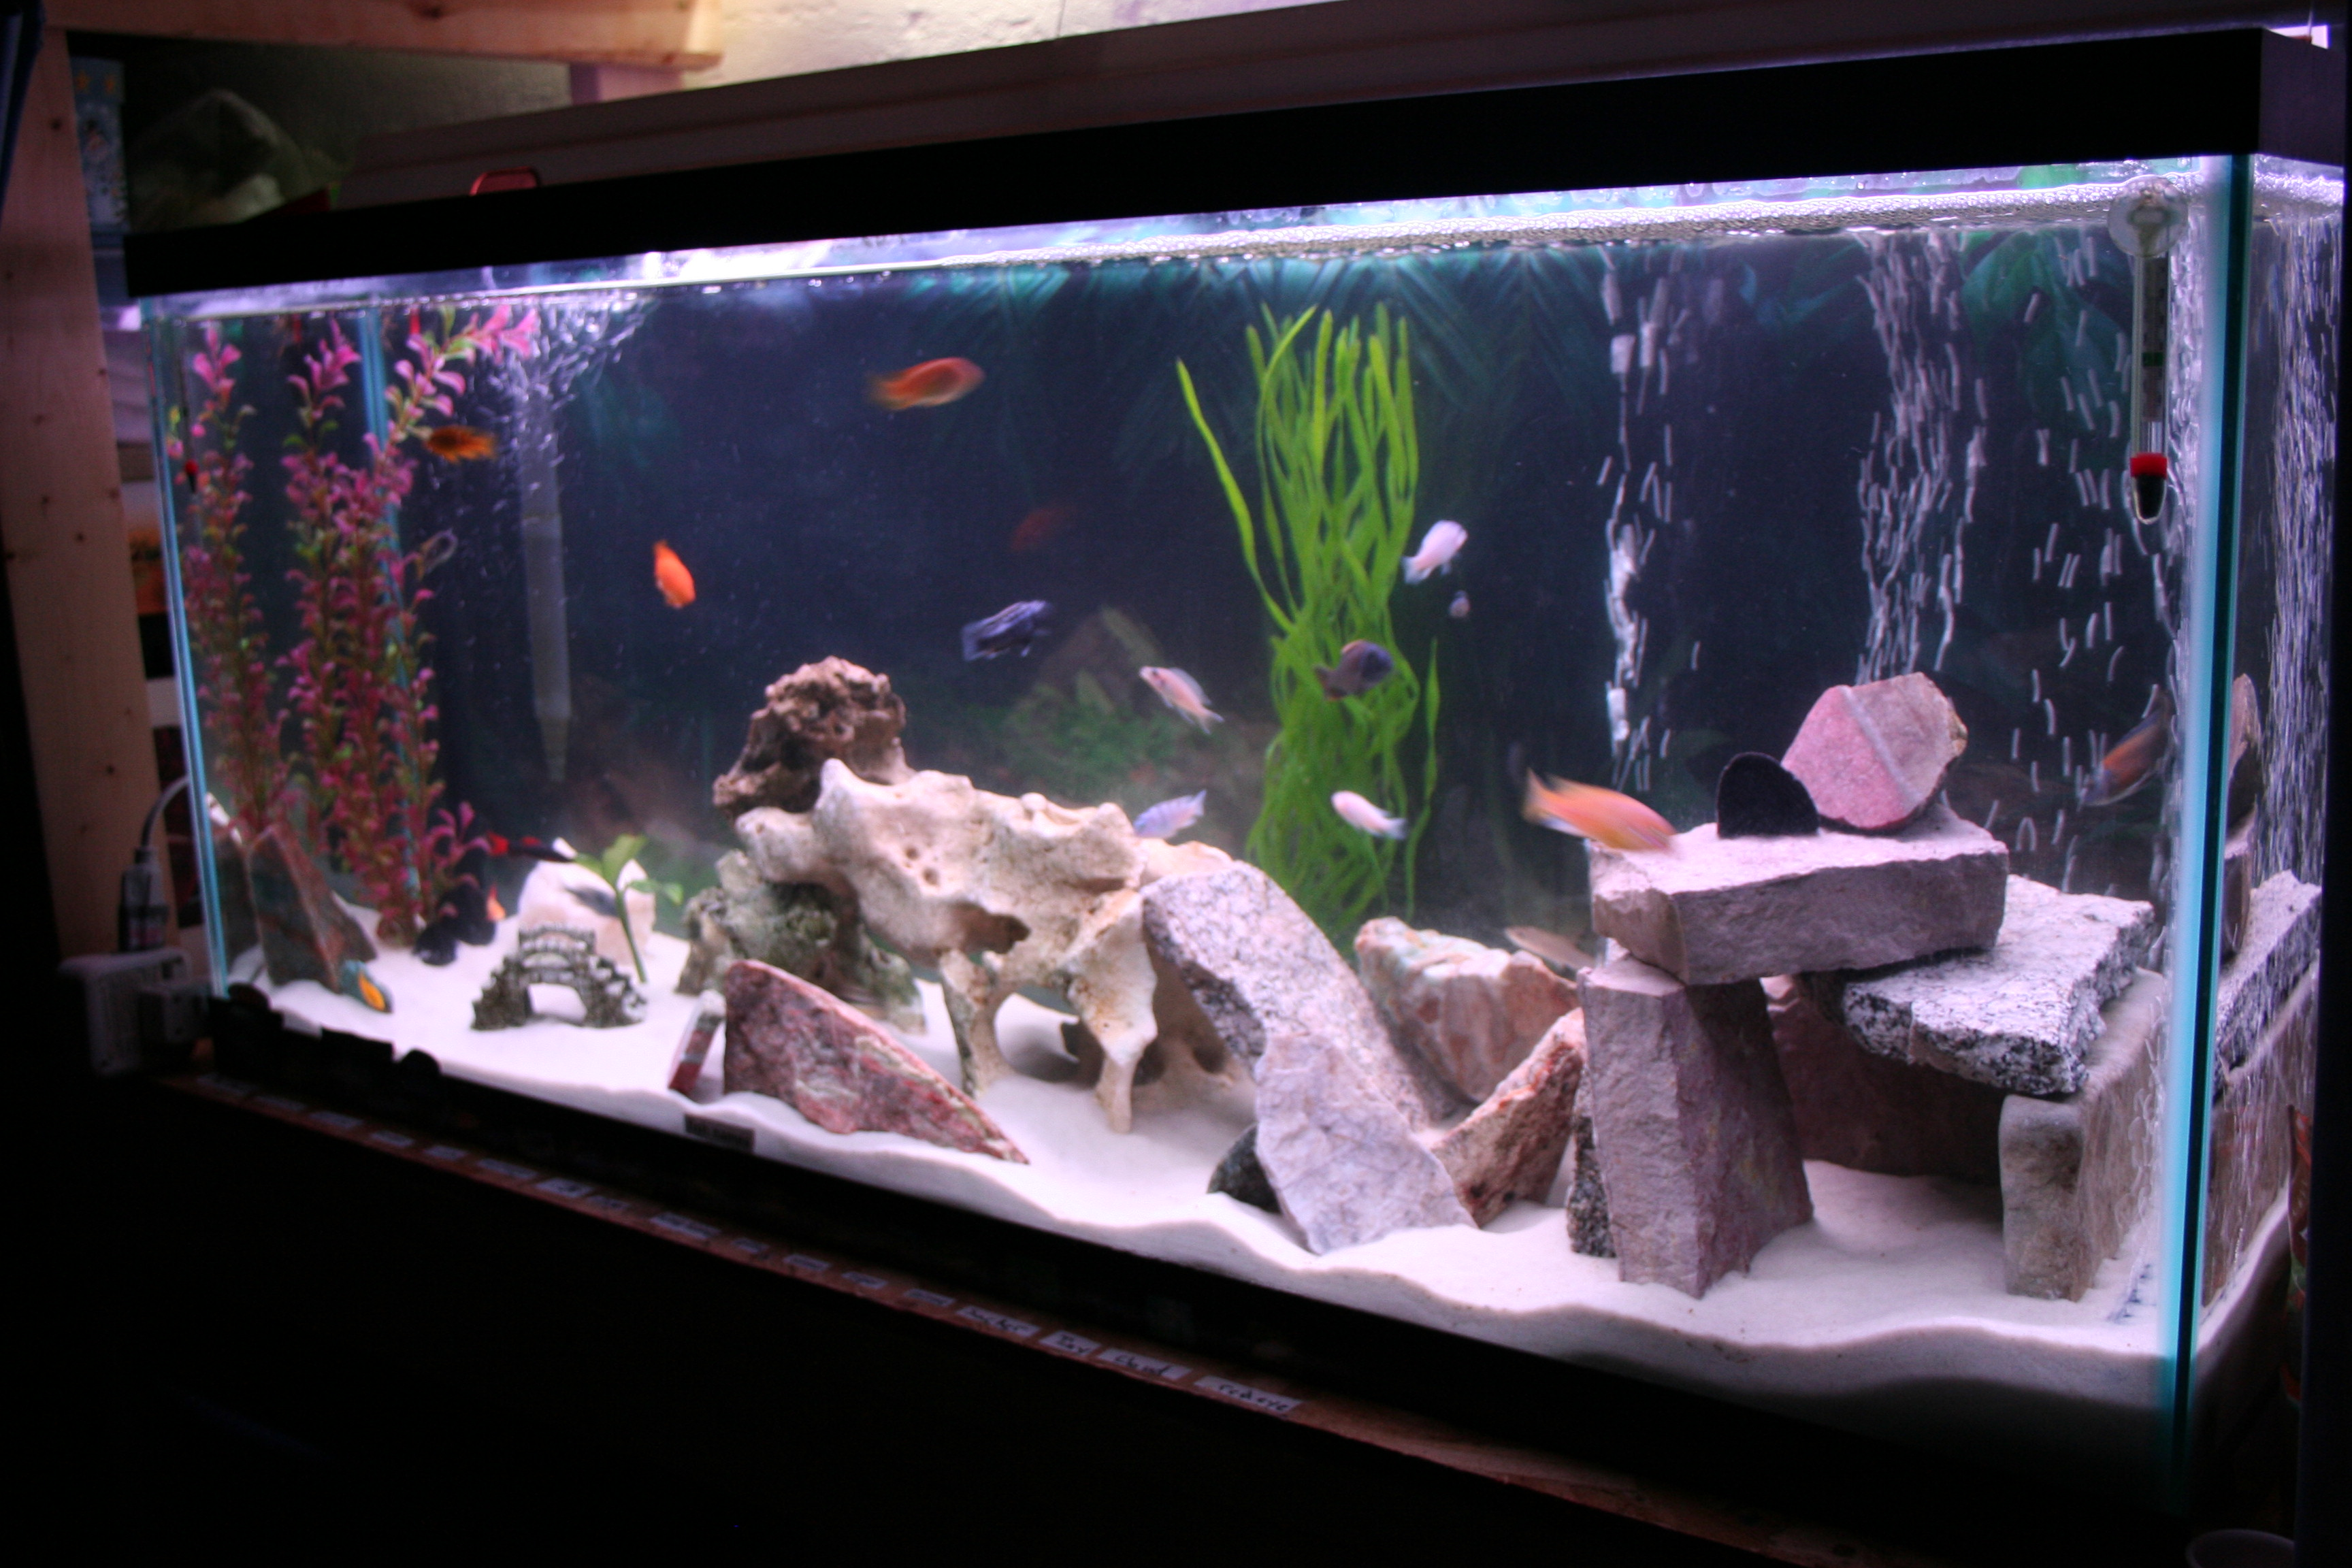 Fish tank decorations for cichlids aquarium rock cave for Aquarium decoration ideas cheap